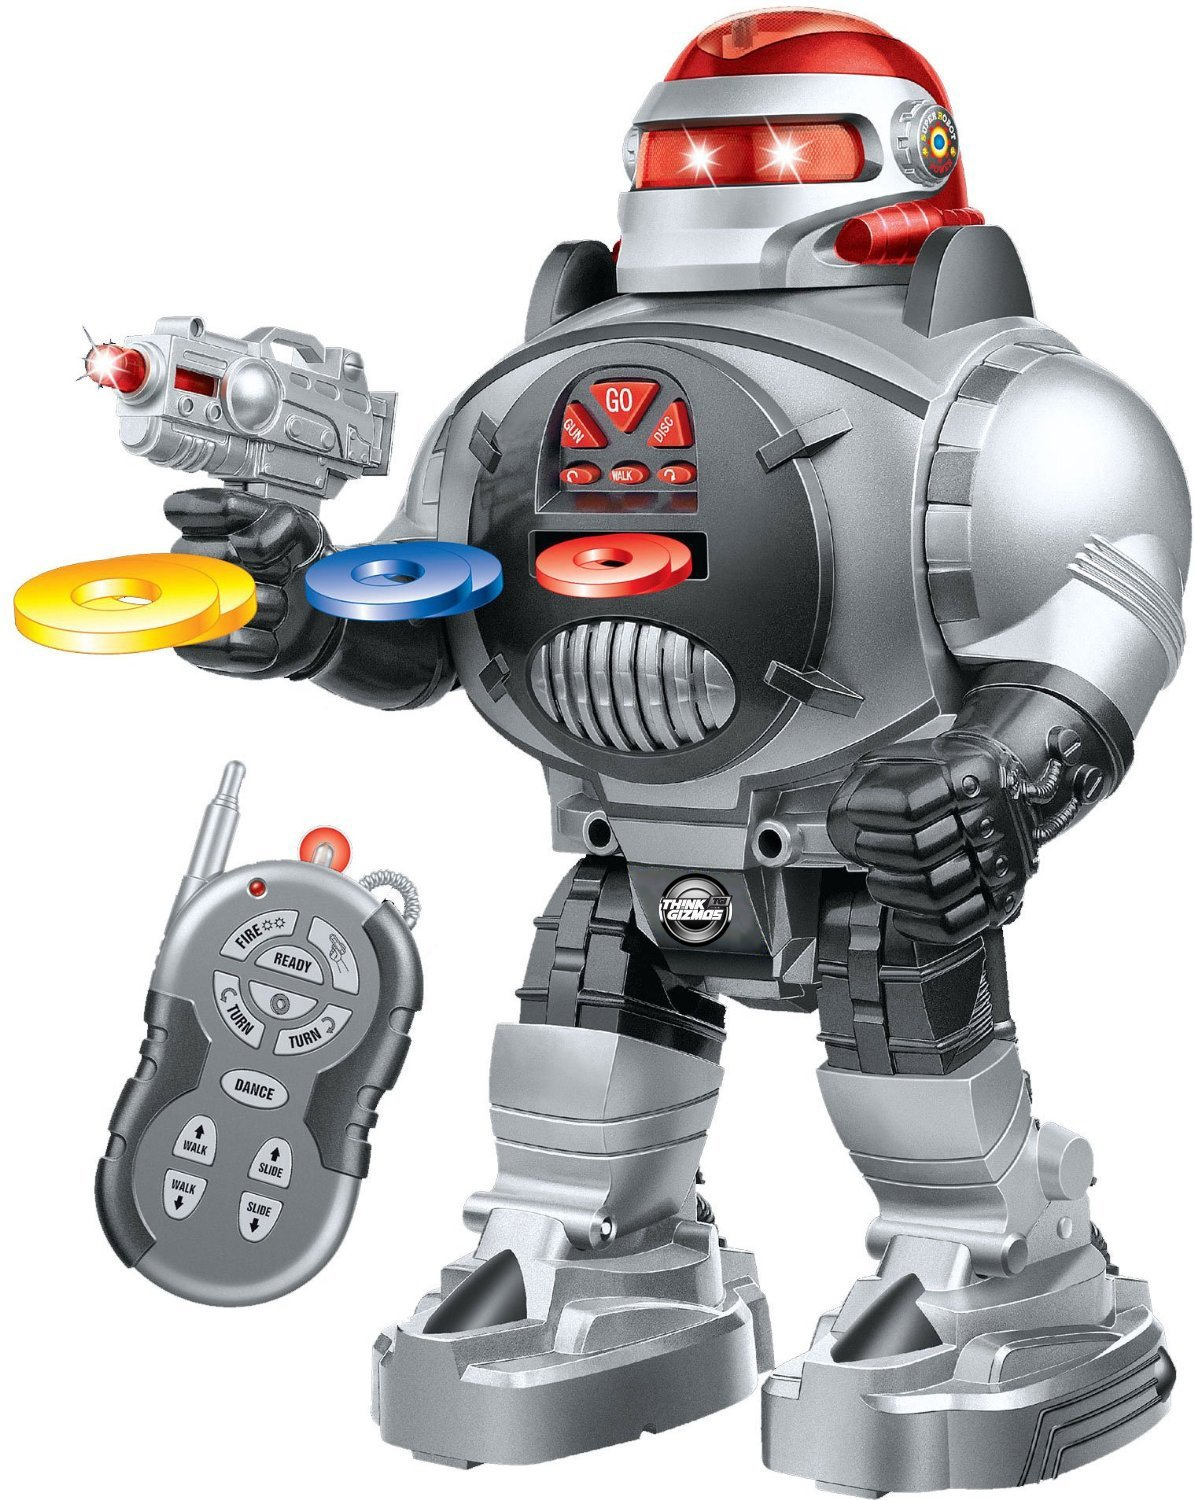 Thinkgizoms Remote Control Robot